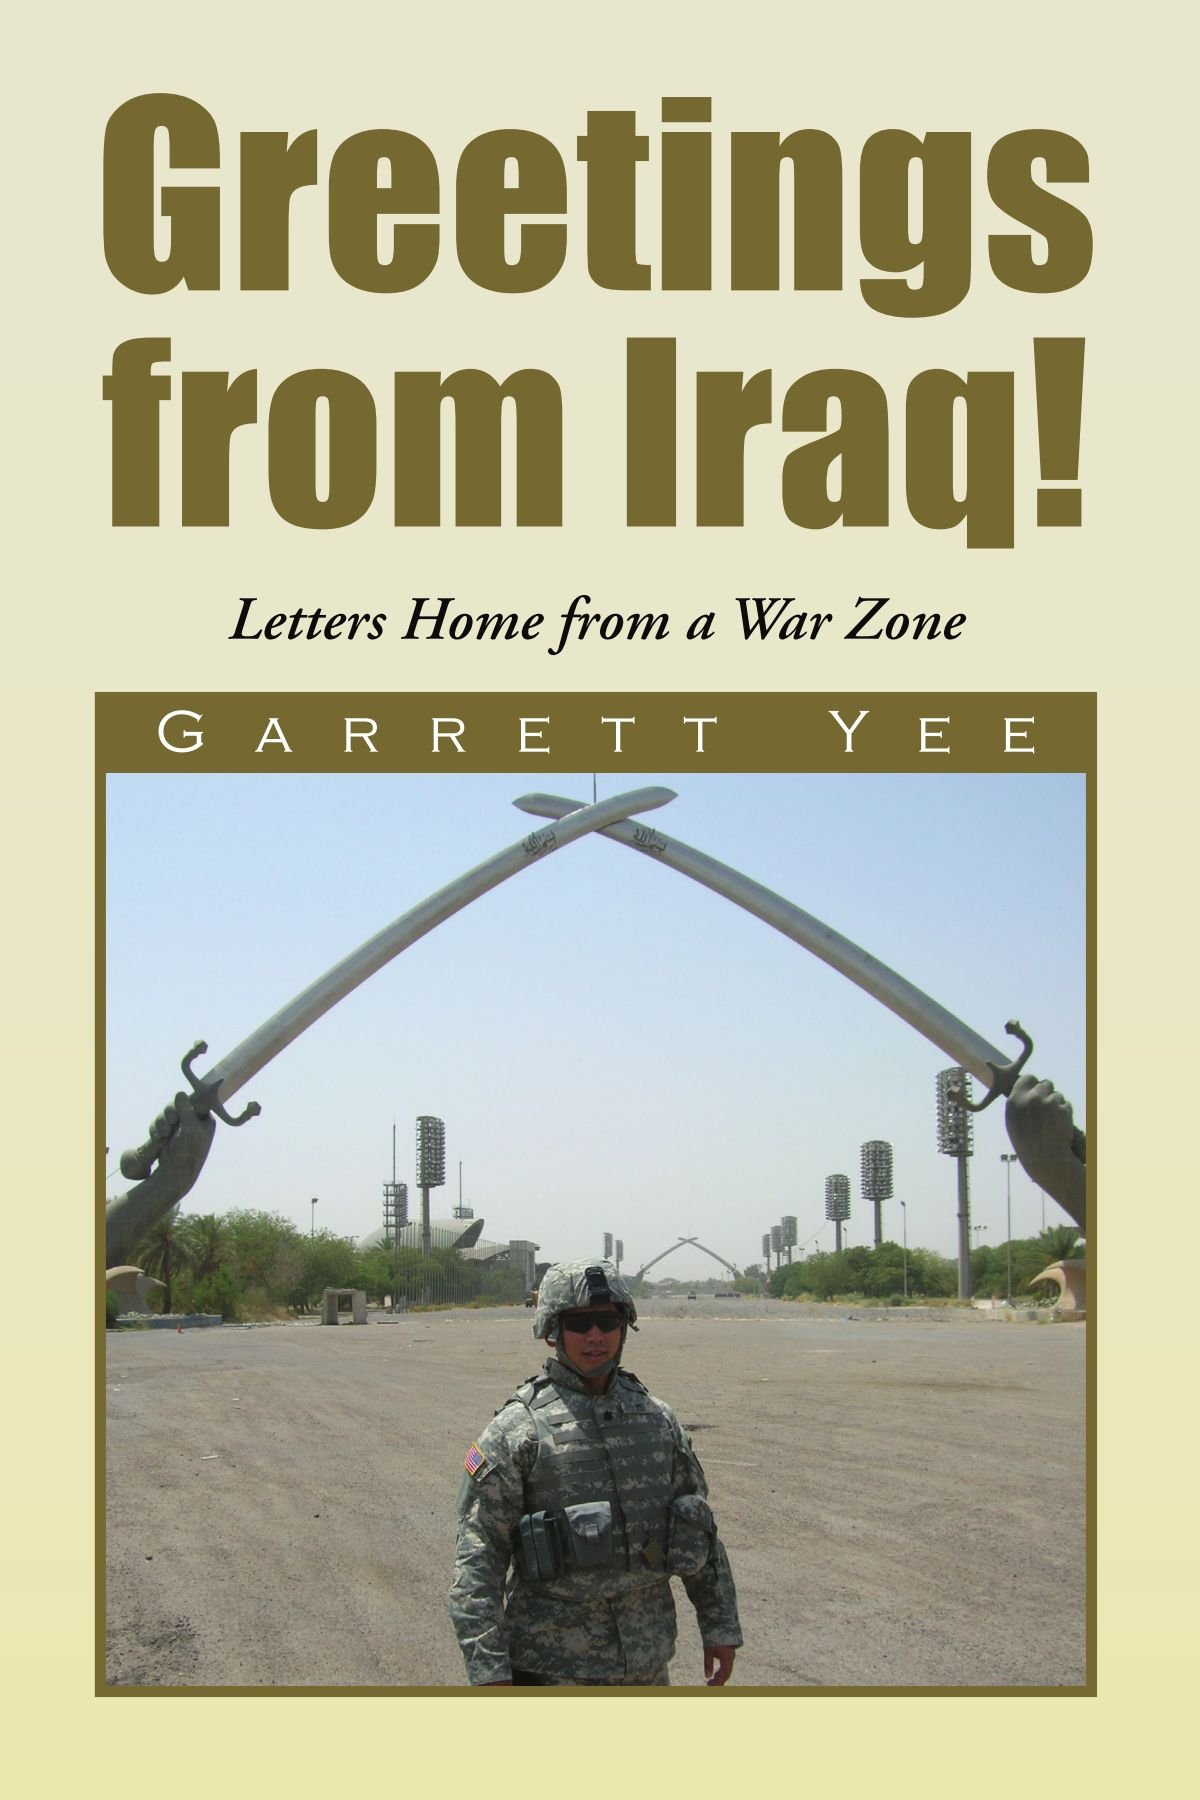 Greetings from iraq letters home from a war zone garrett yee greetings from iraq letters home from a war zone garrett yee 9781436302876 amazon books kristyandbryce Gallery